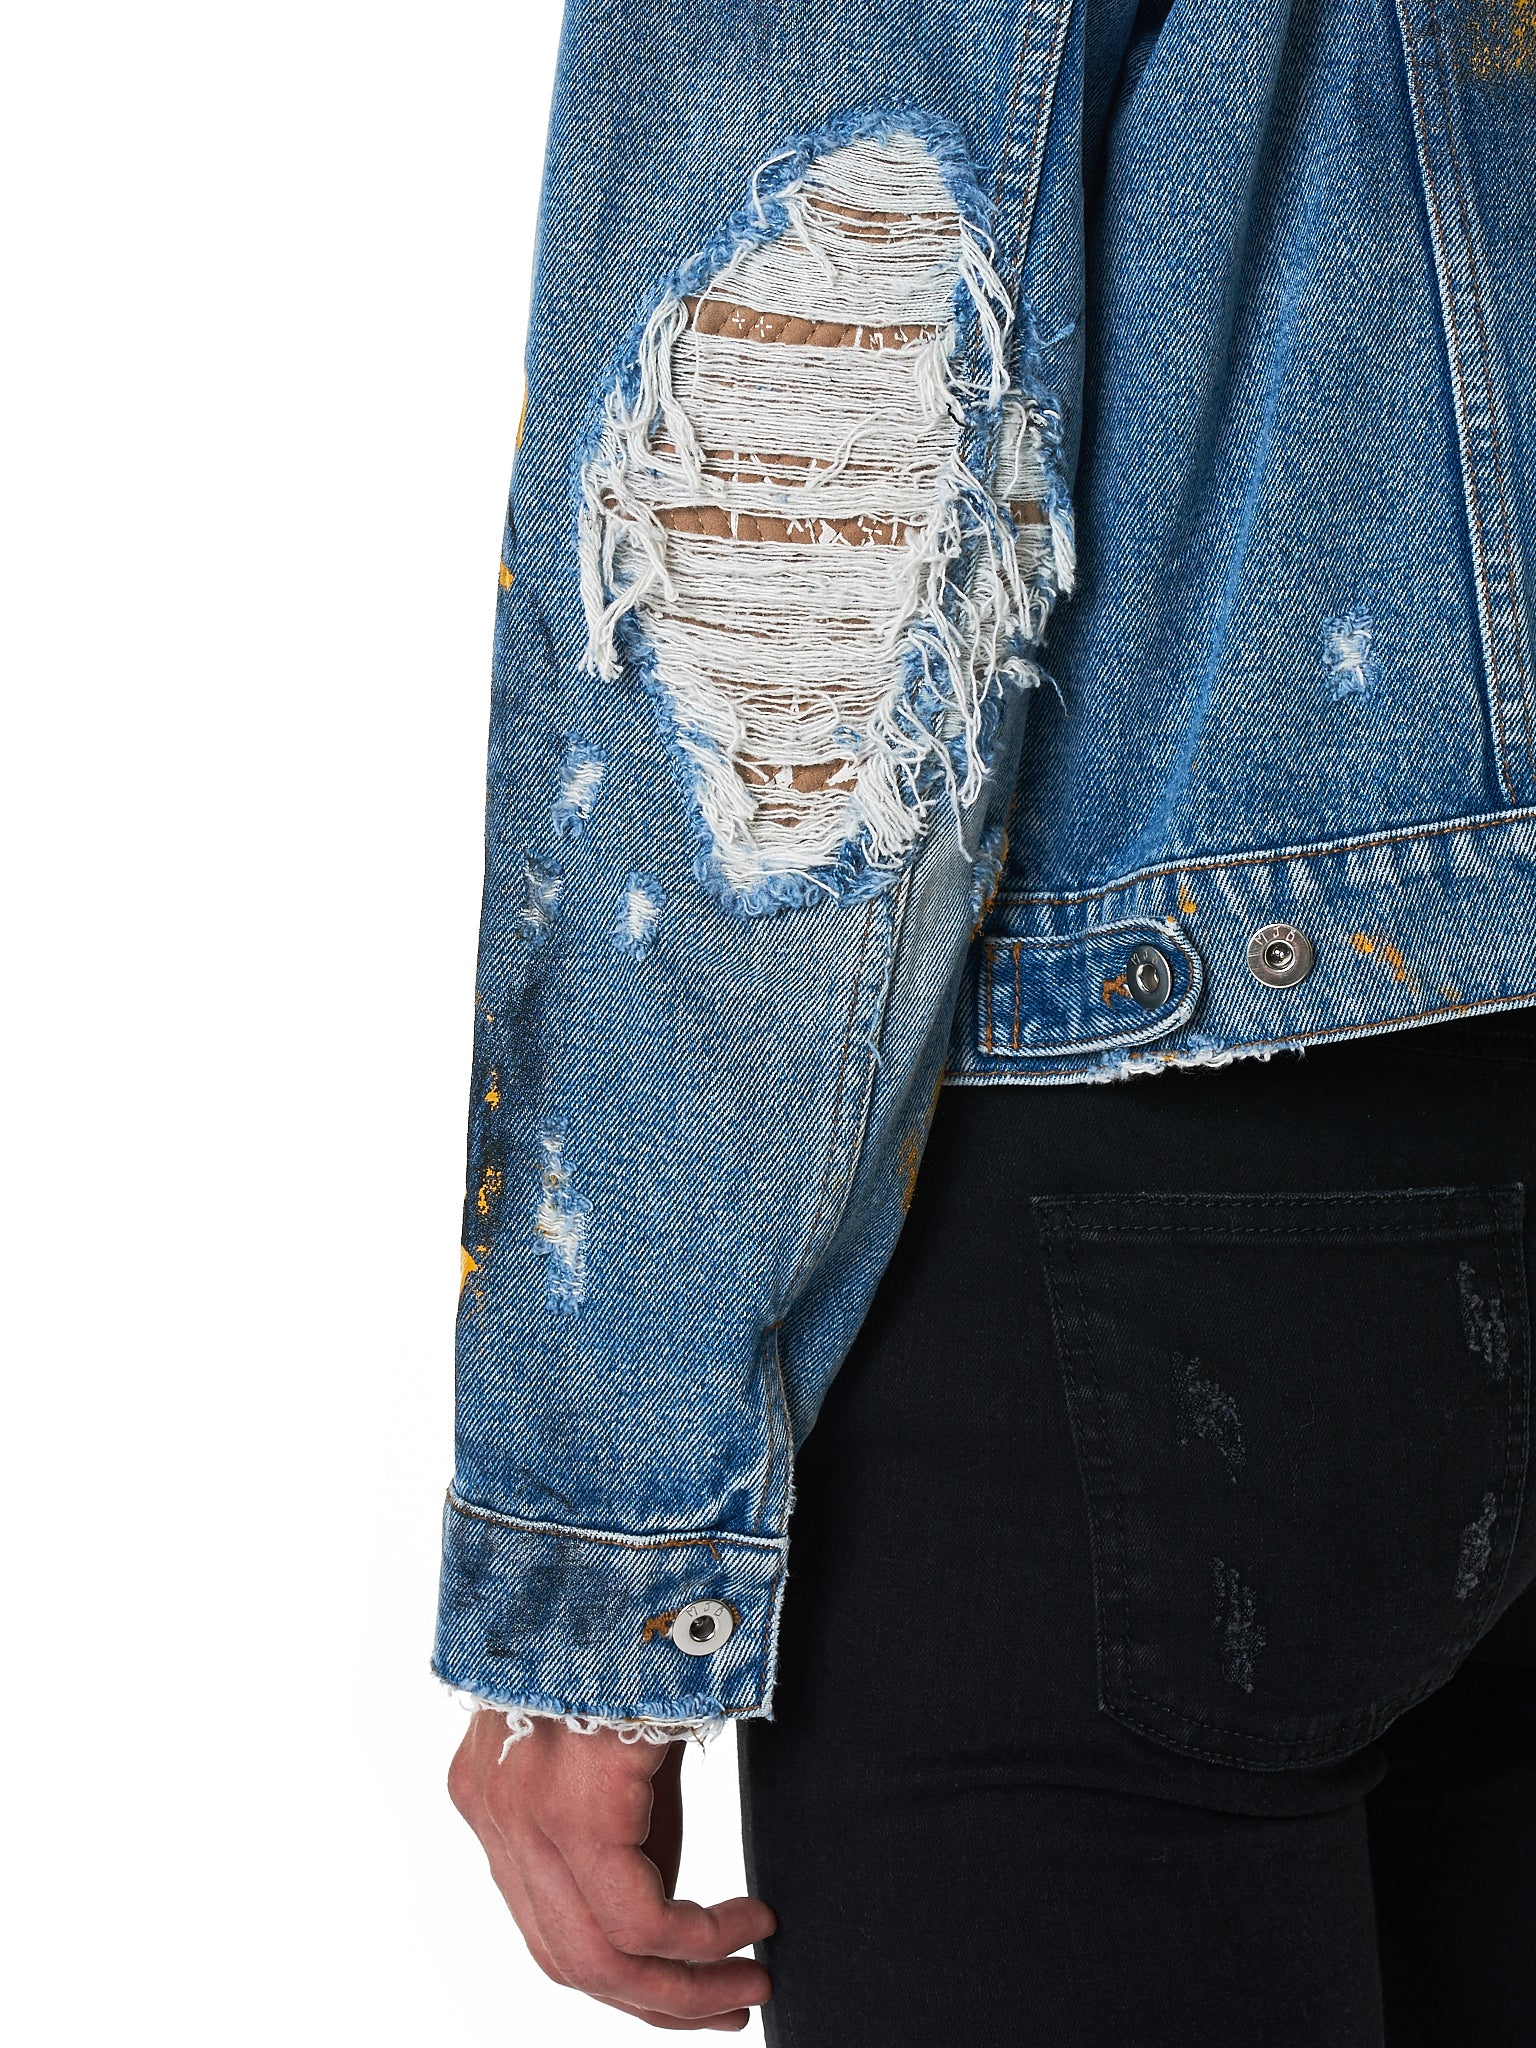 MJB (Marc Jacques Burton) Denim Jacket - Hlorenzo Detail 3